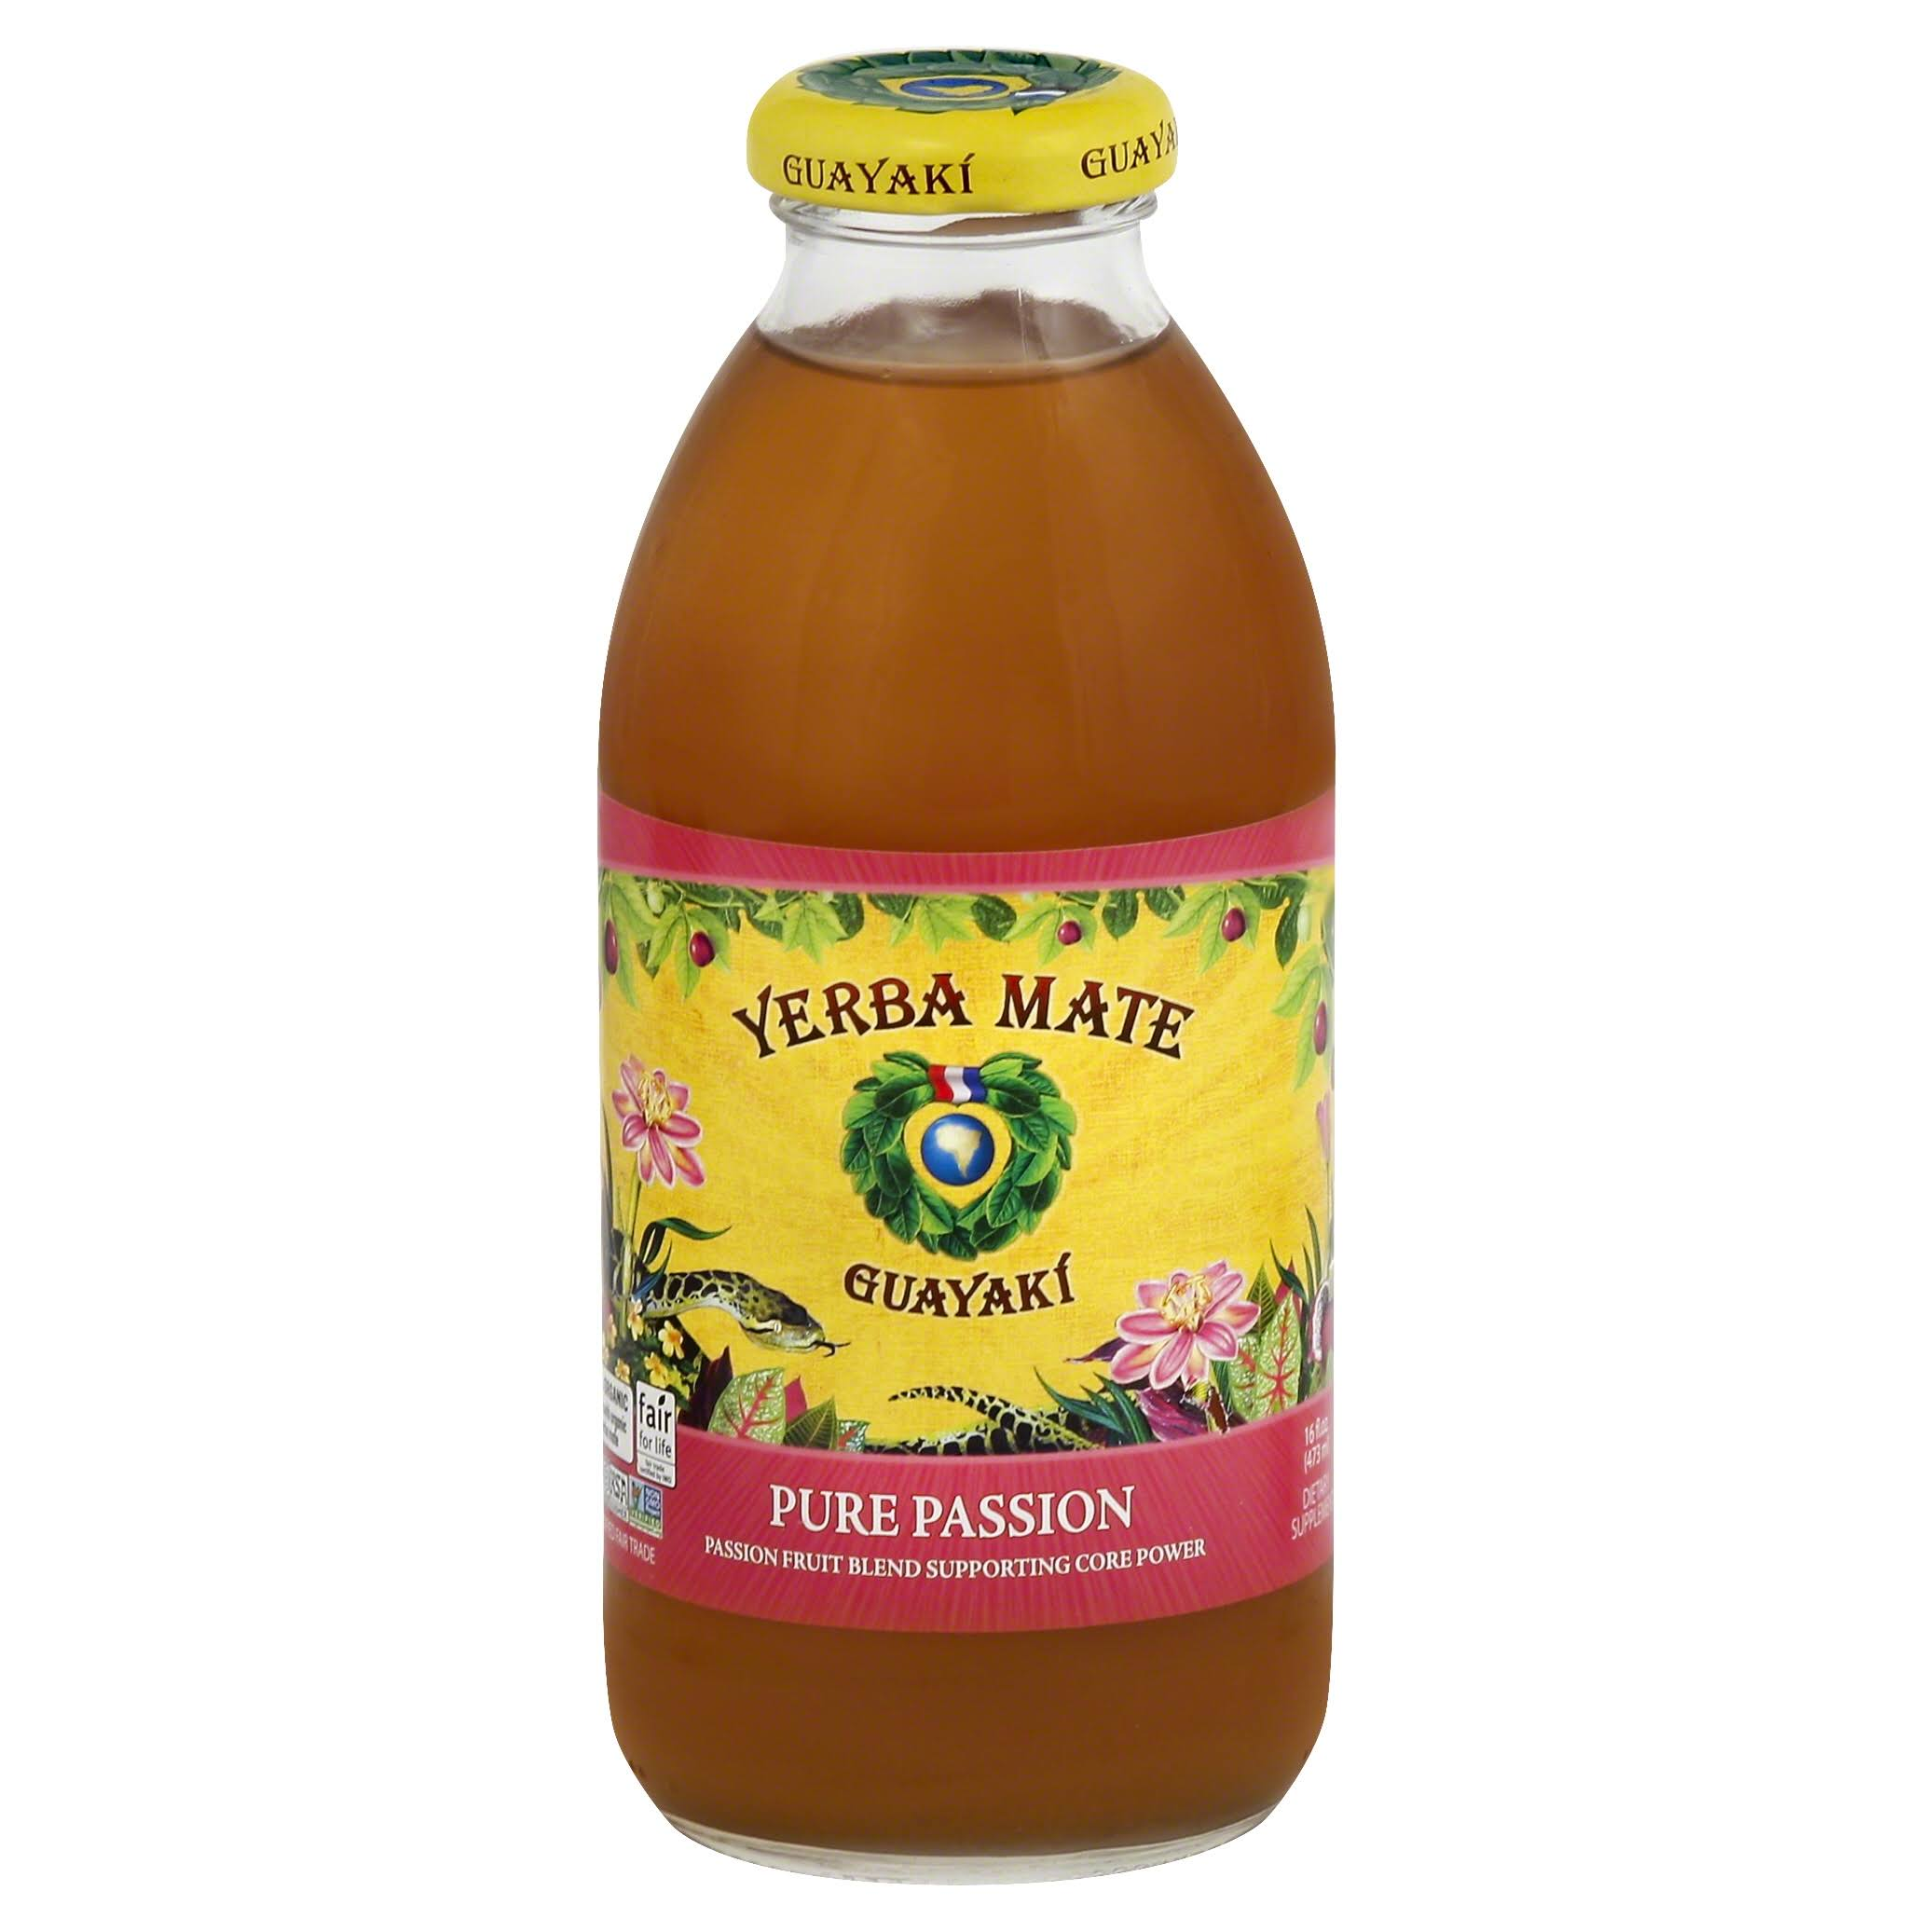 Guayaki Yerba Mate, Pure Passion - 16 fl oz